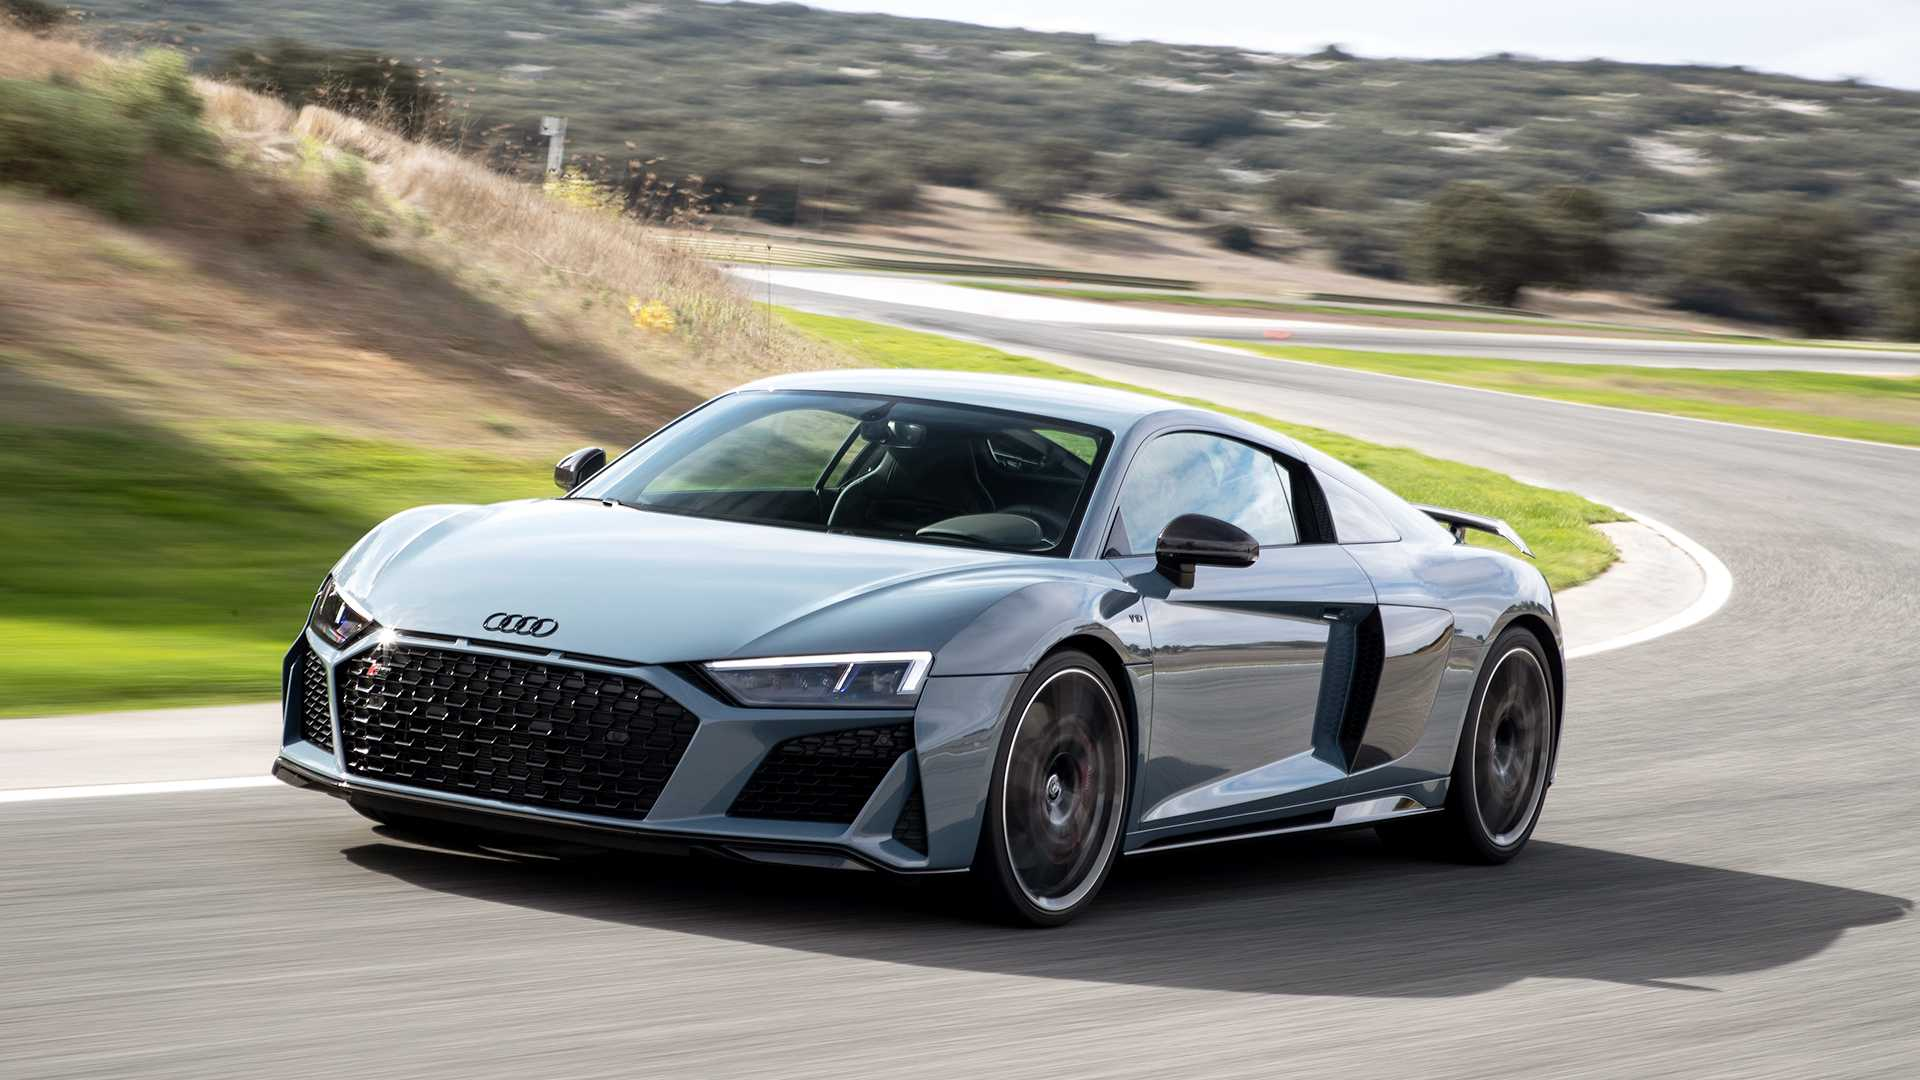 82 A 2019 Audi R8 V10 Spyder Specs And Review